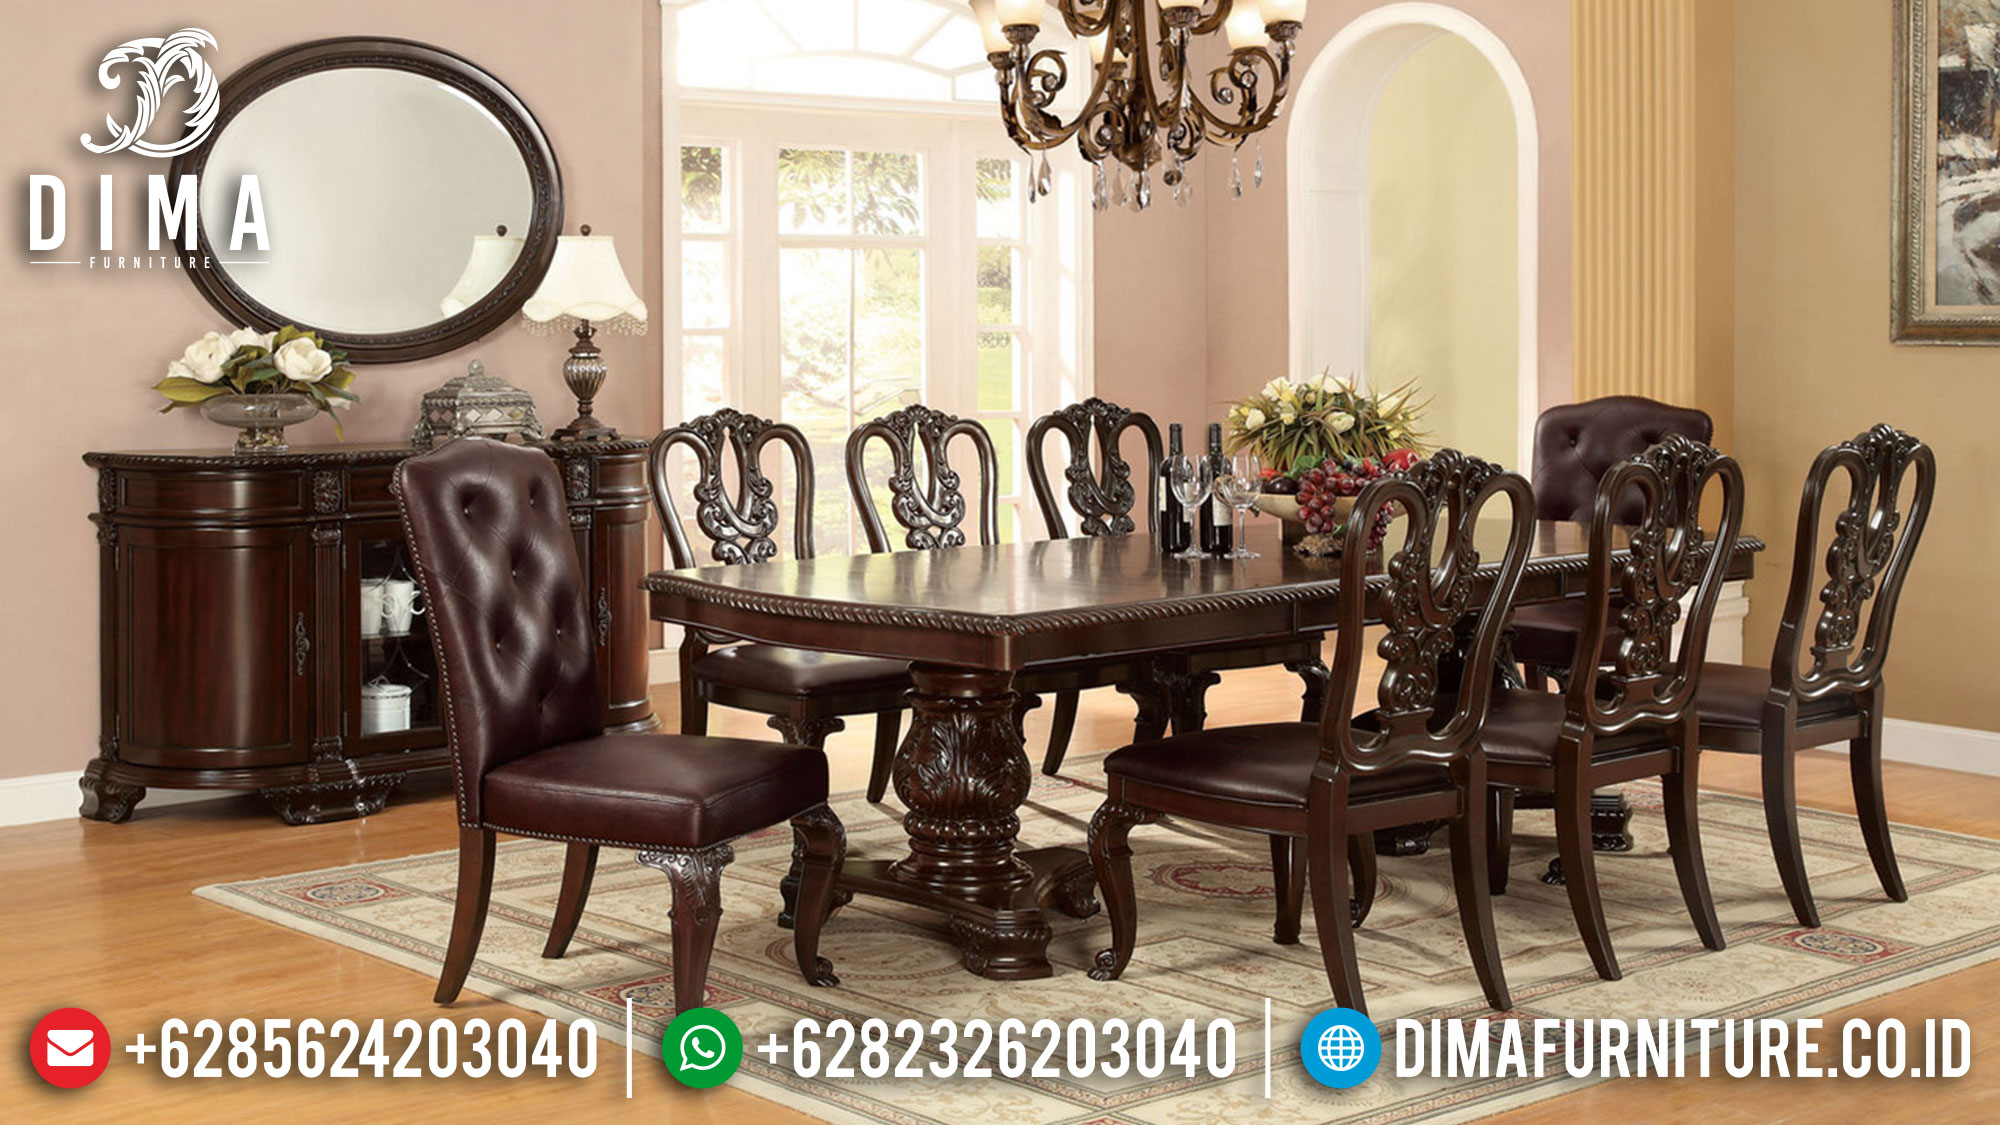 Jual Meja Makan Minimalis Jepara Natural Jati Solid Wood Luxury TTJ-1699